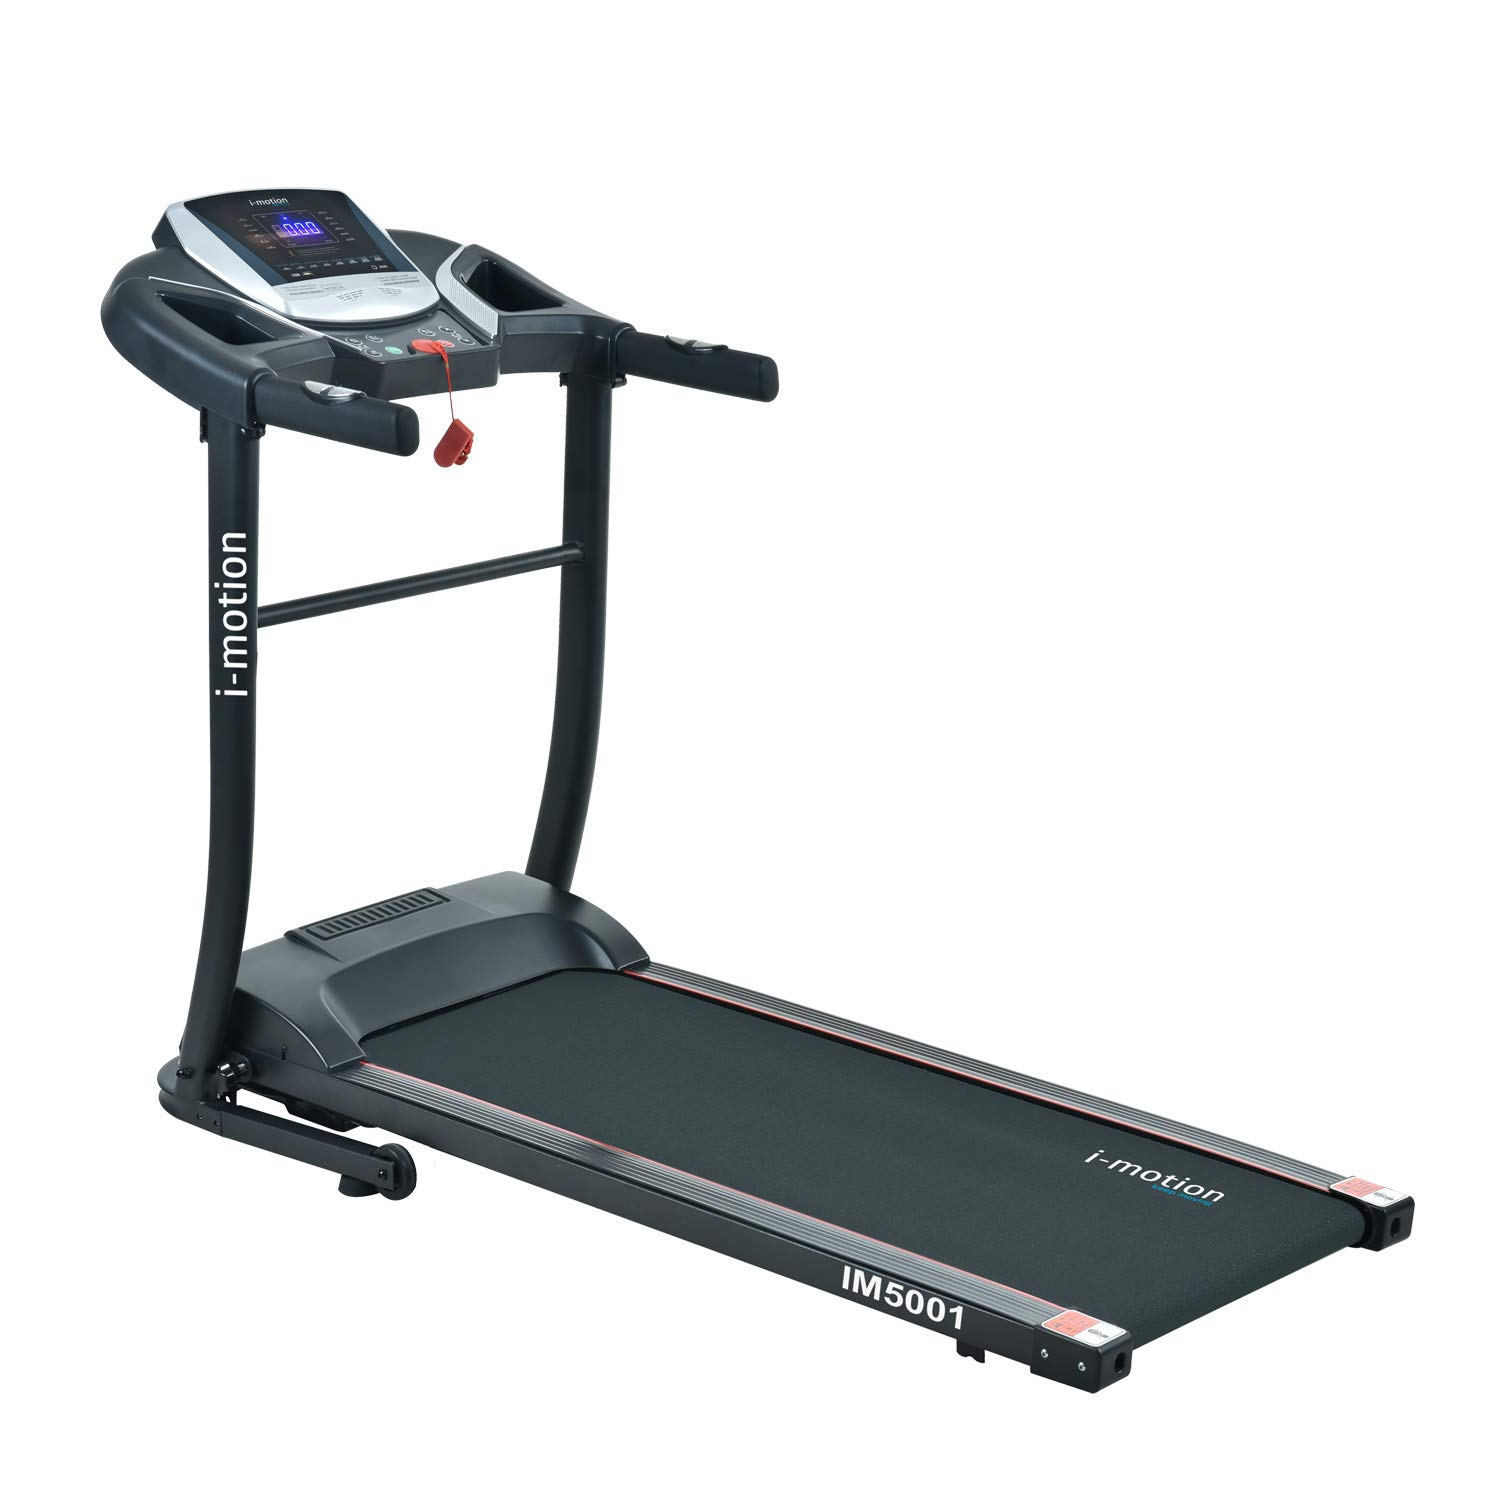 WELCARE Folding Treadmill IM5001 (1.5 HP) - Electric